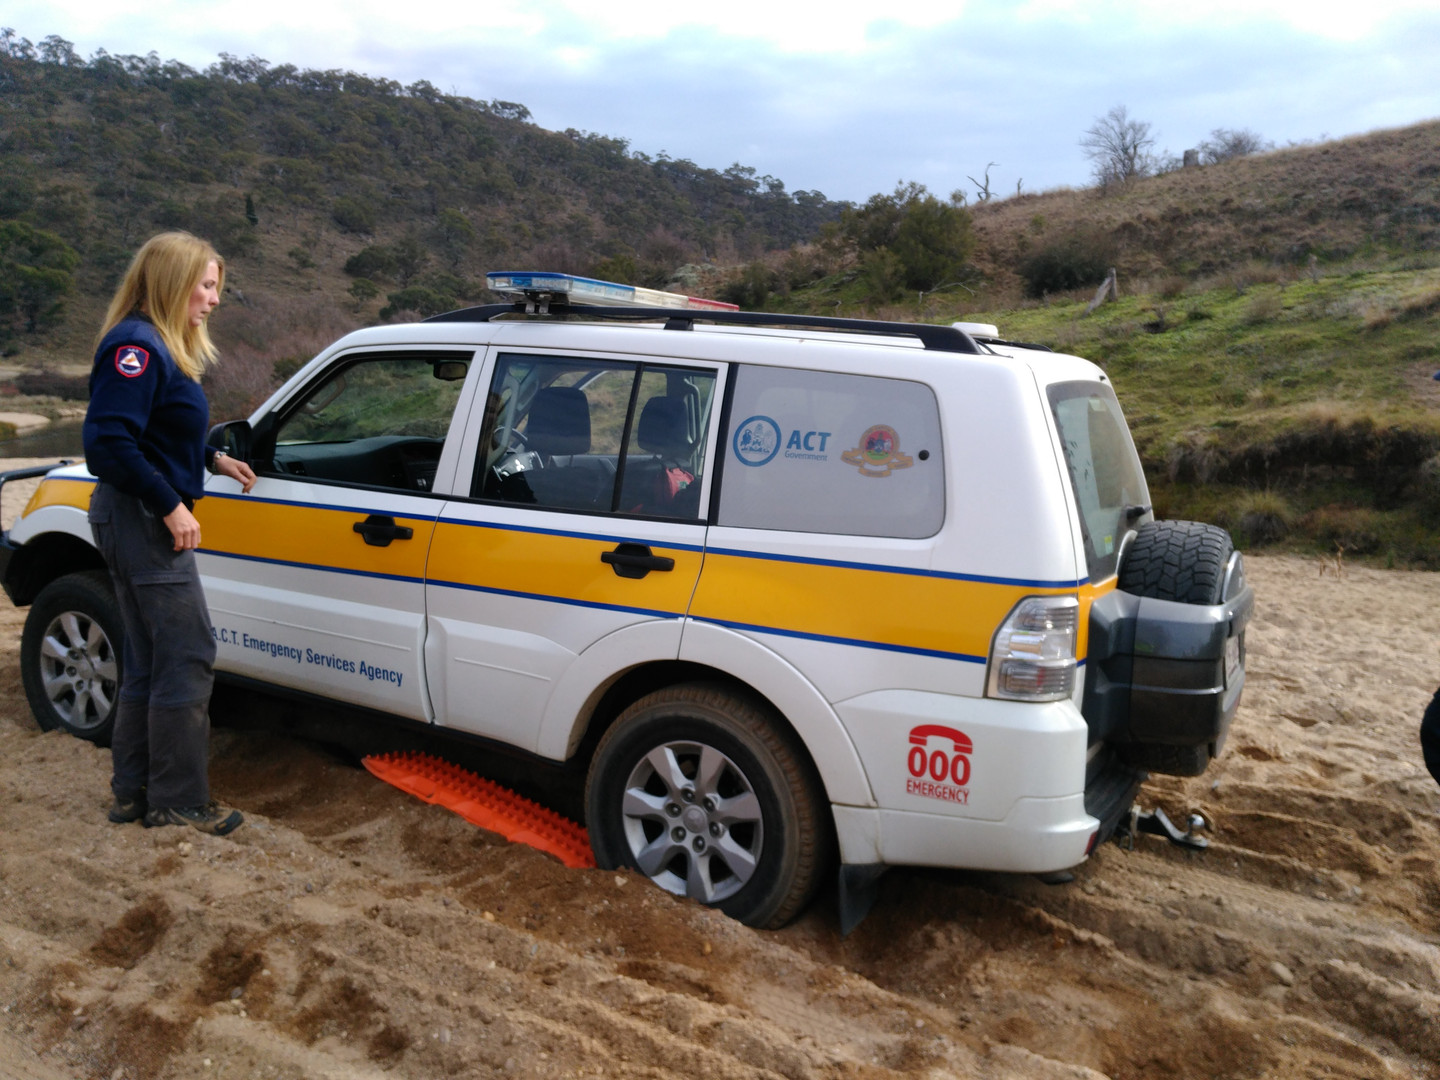 Learning vehicle recovery